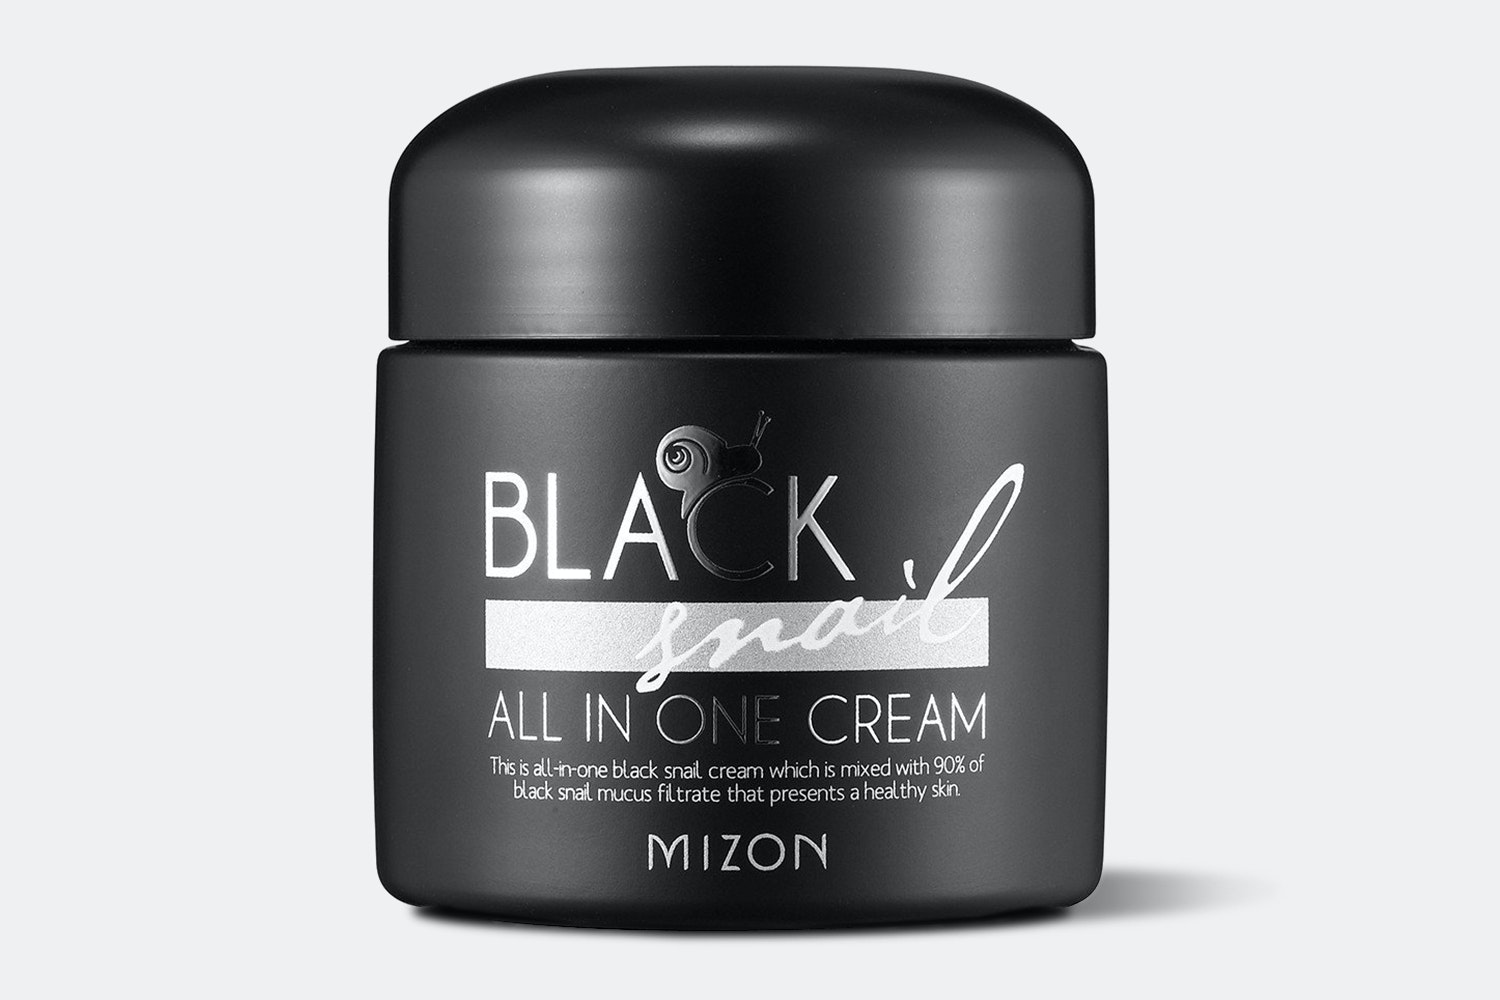 Mizon Black Snail All-in-One Cream (2-Pack)